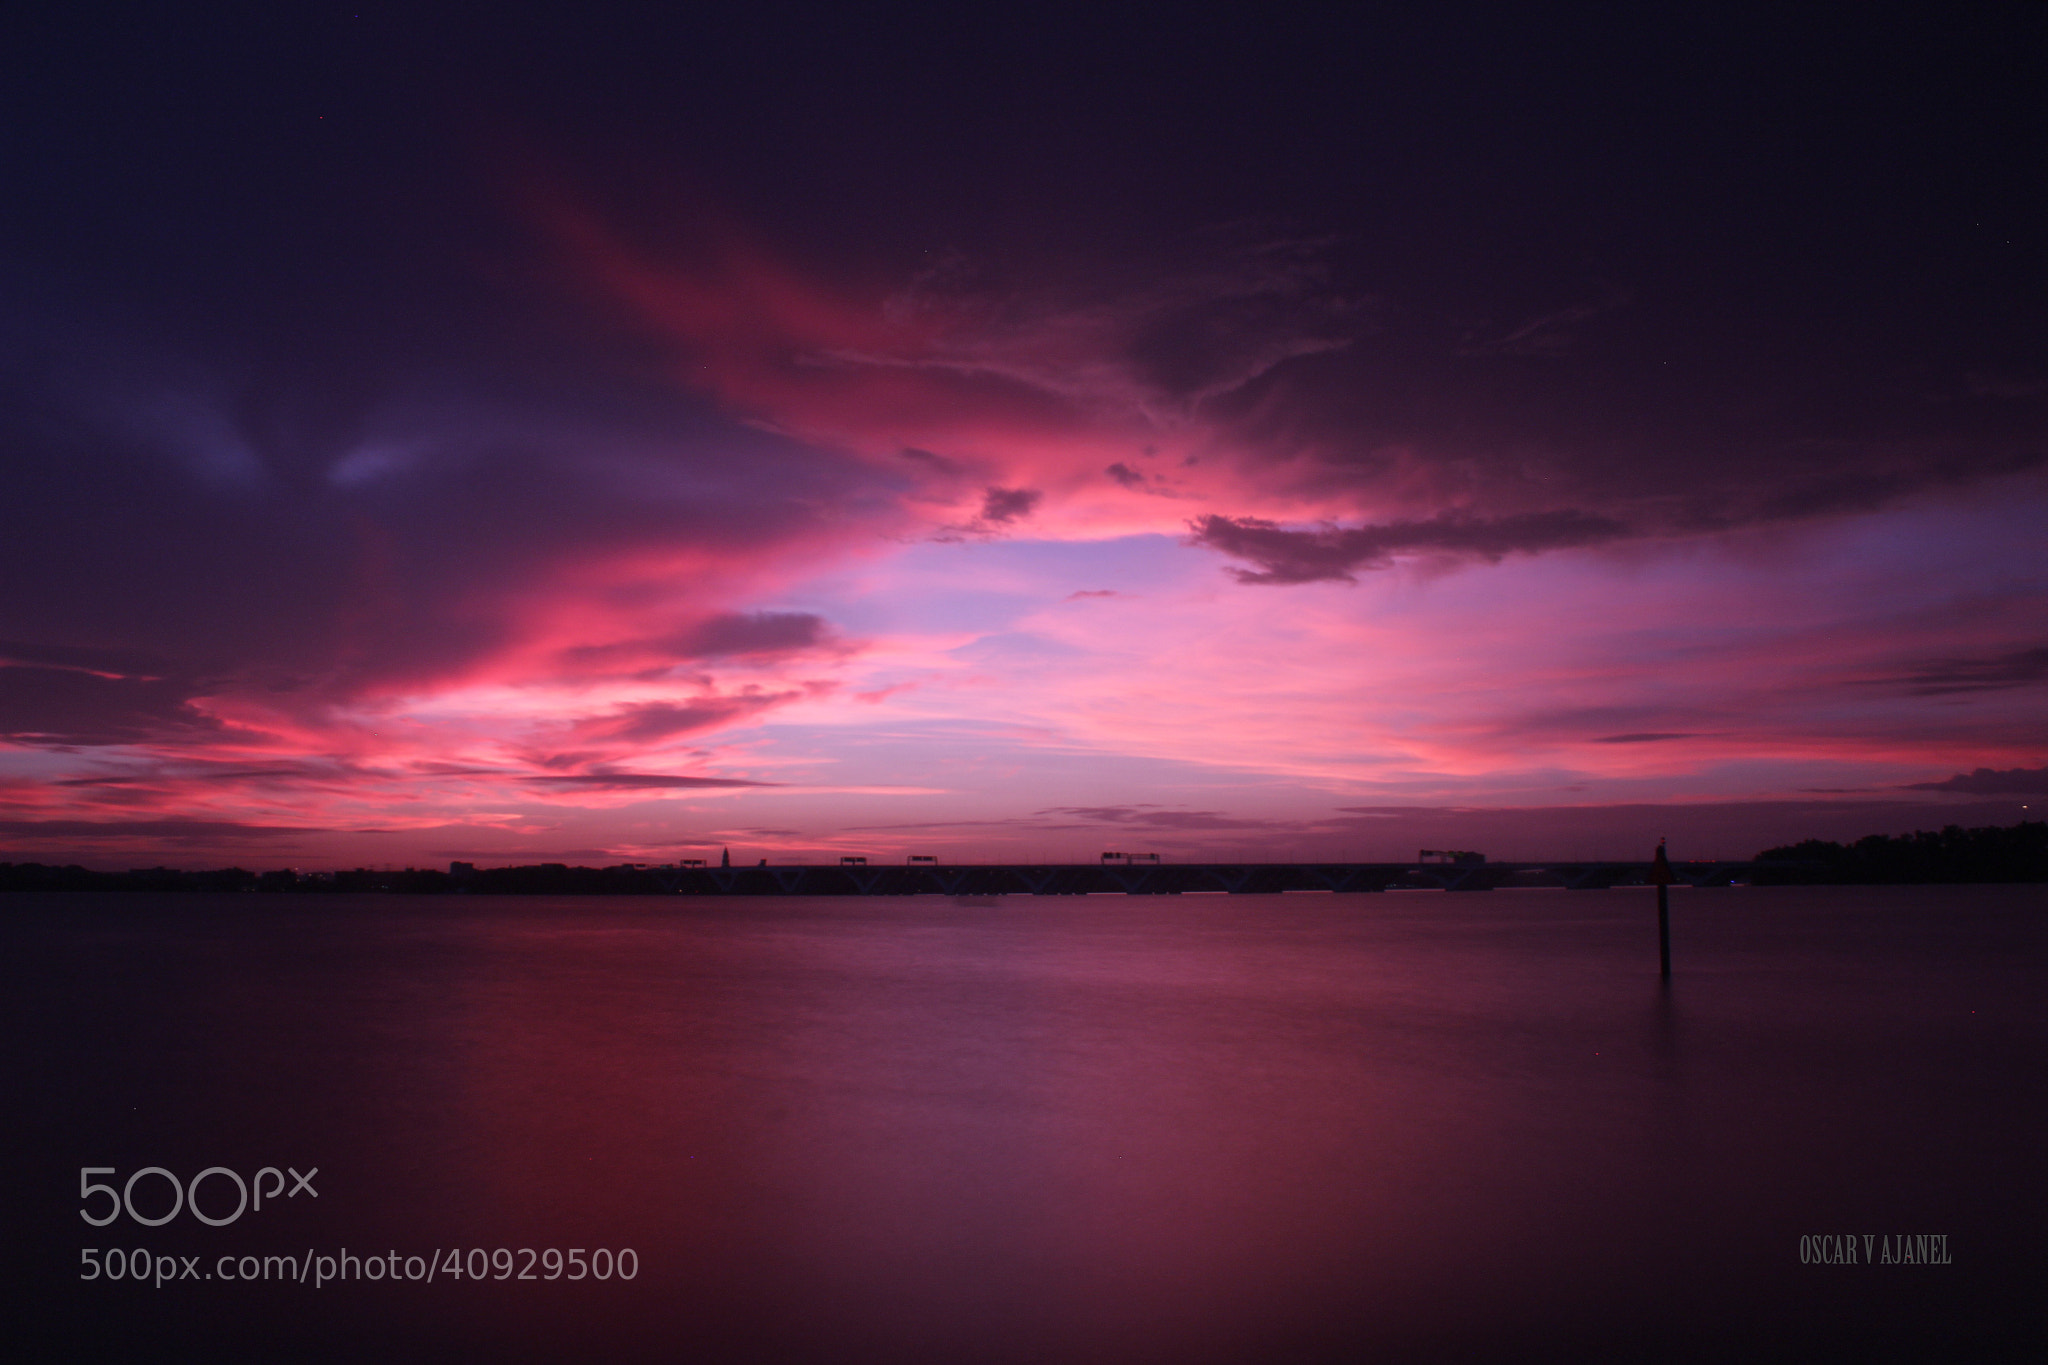 Photograph Pink & purple sunset by Oscar V Ajanel on 500px